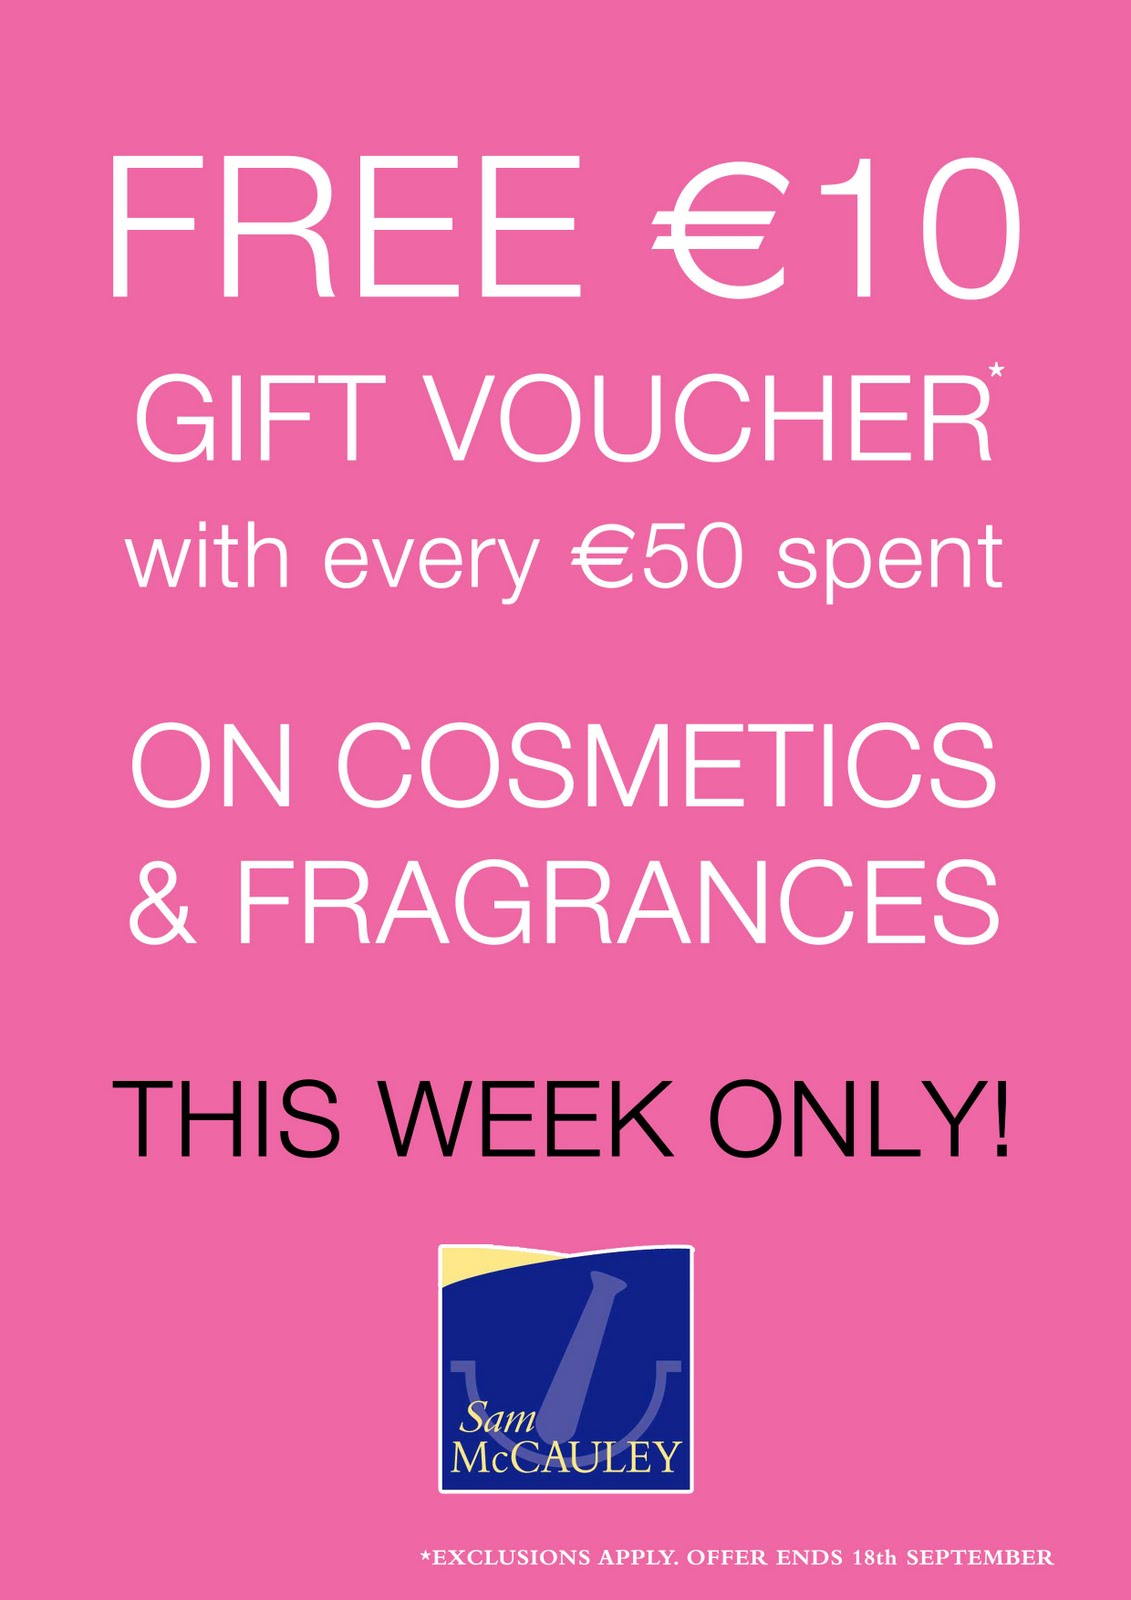 Free €10 Voucher with every €50 Spent!